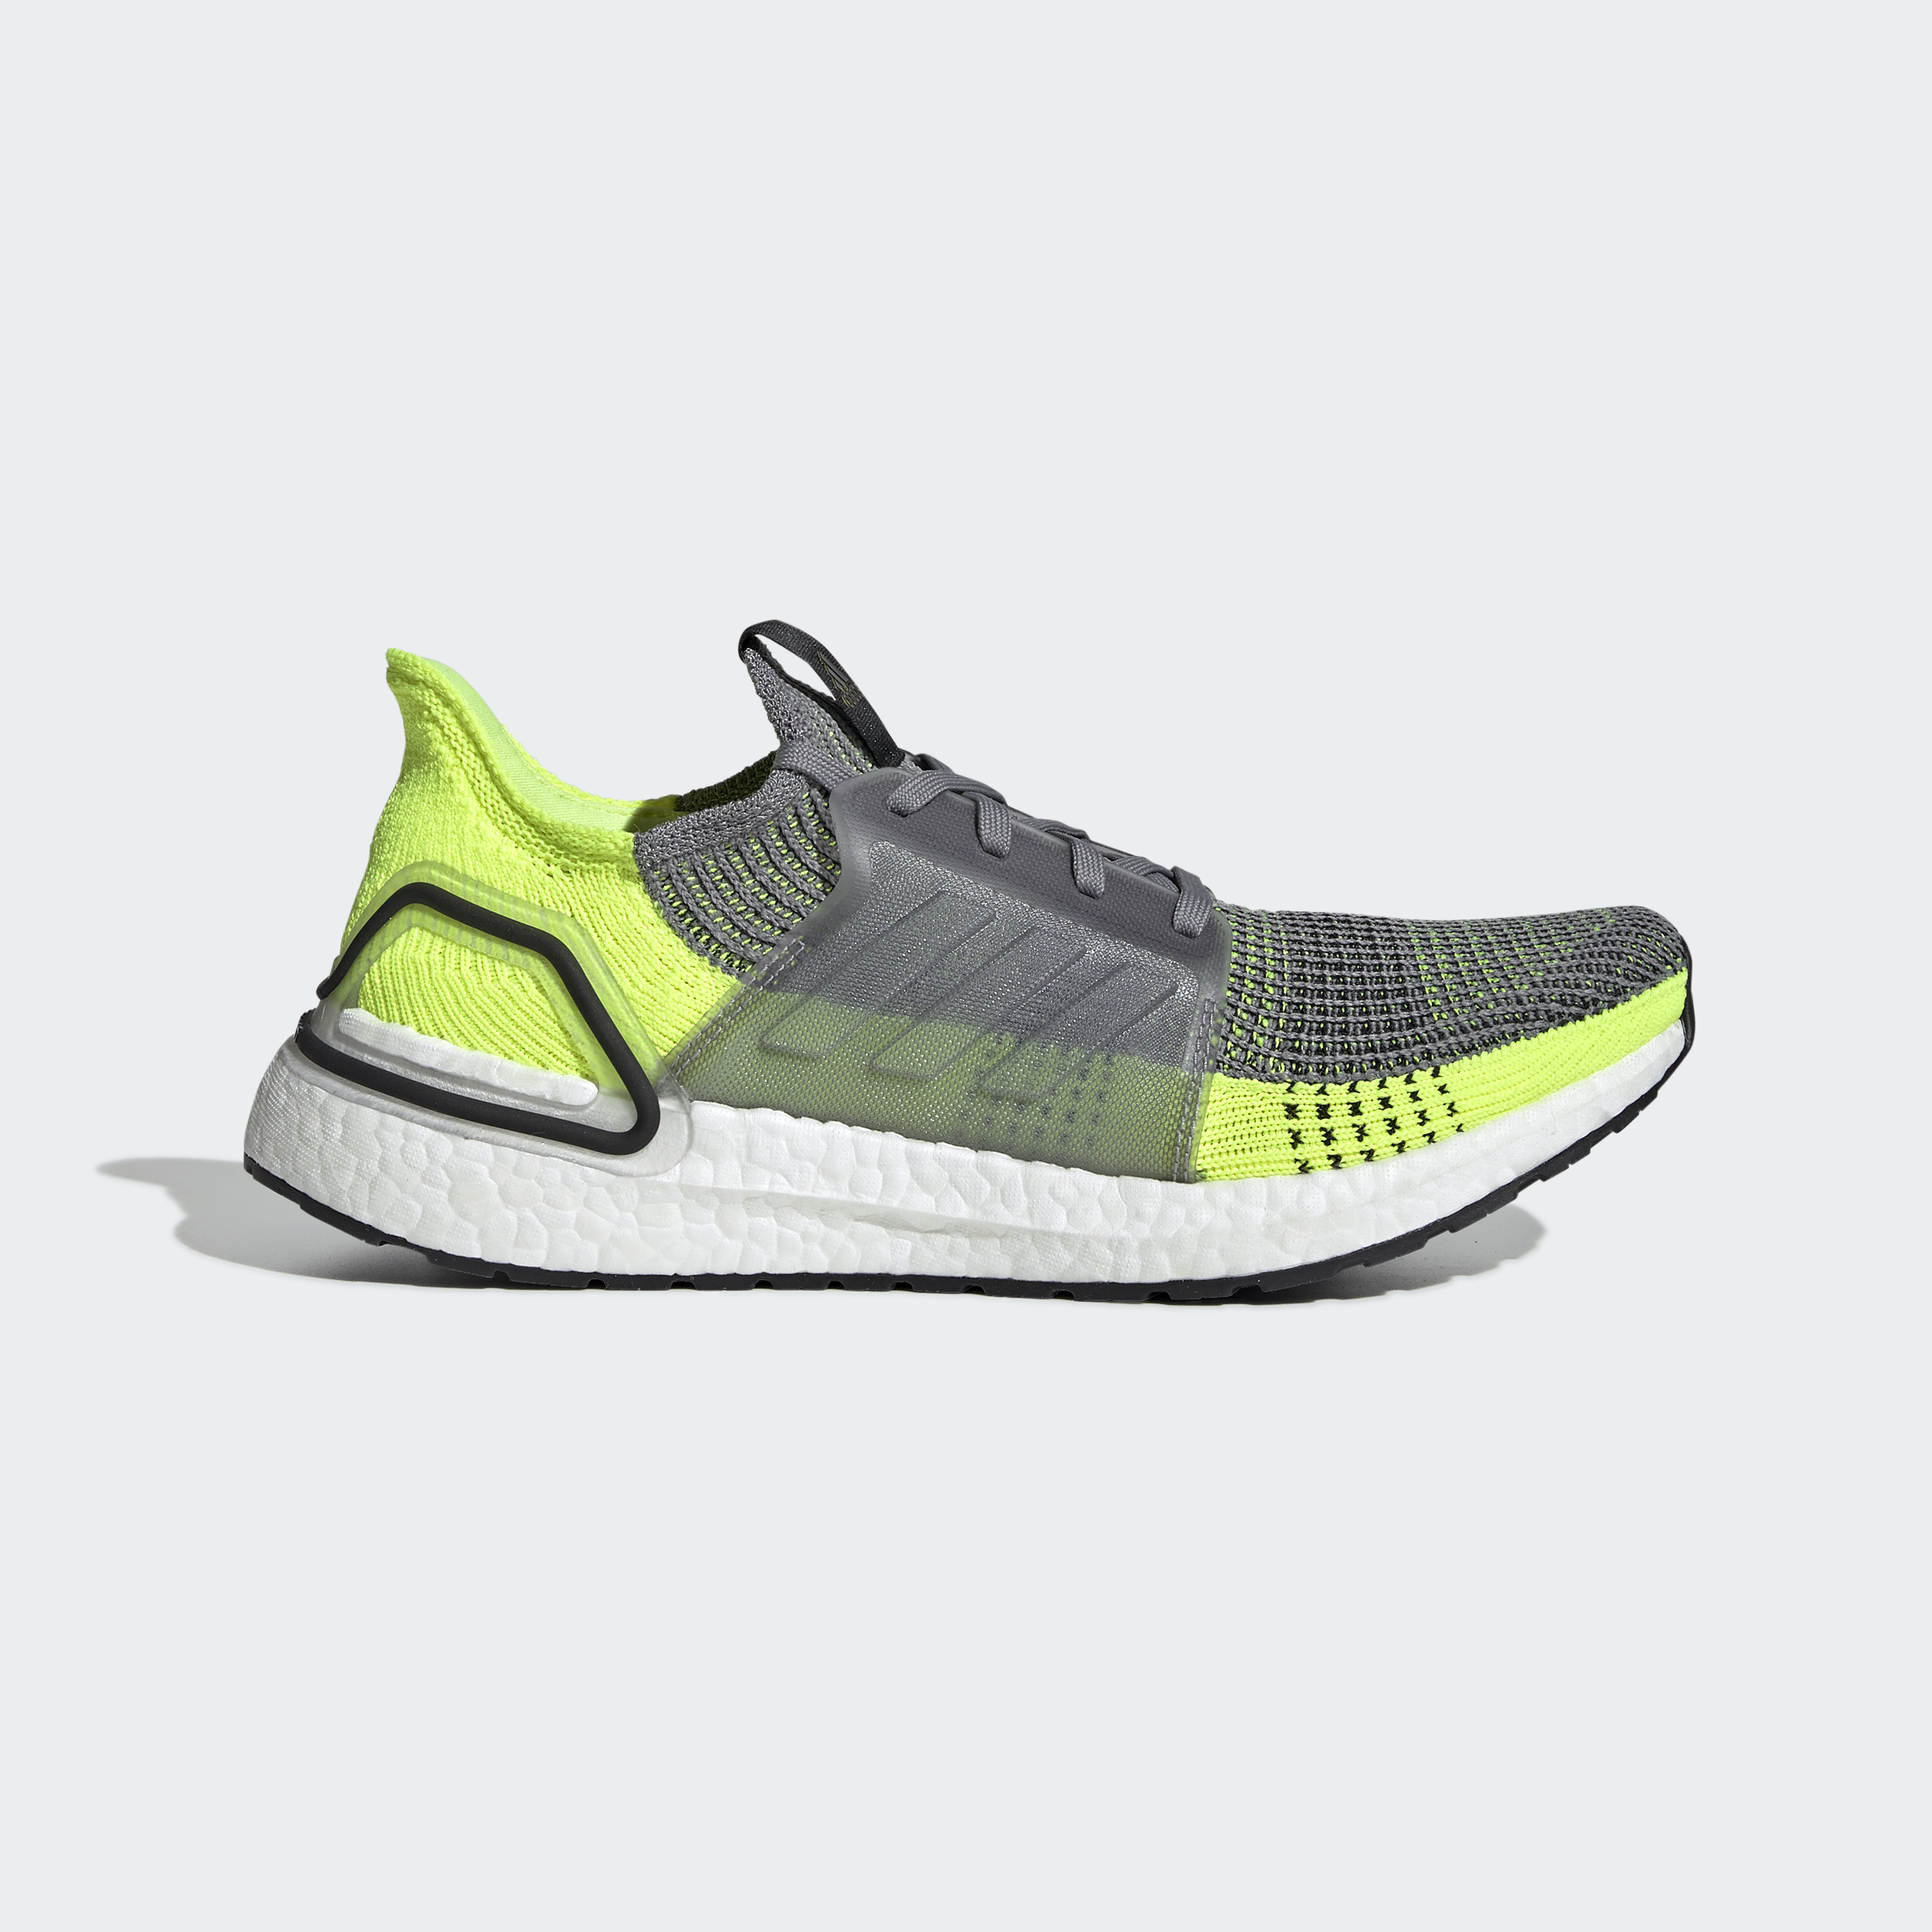 adidas-Ultraboost-19-Shoes-Athletic-amp-Sneakers thumbnail 33